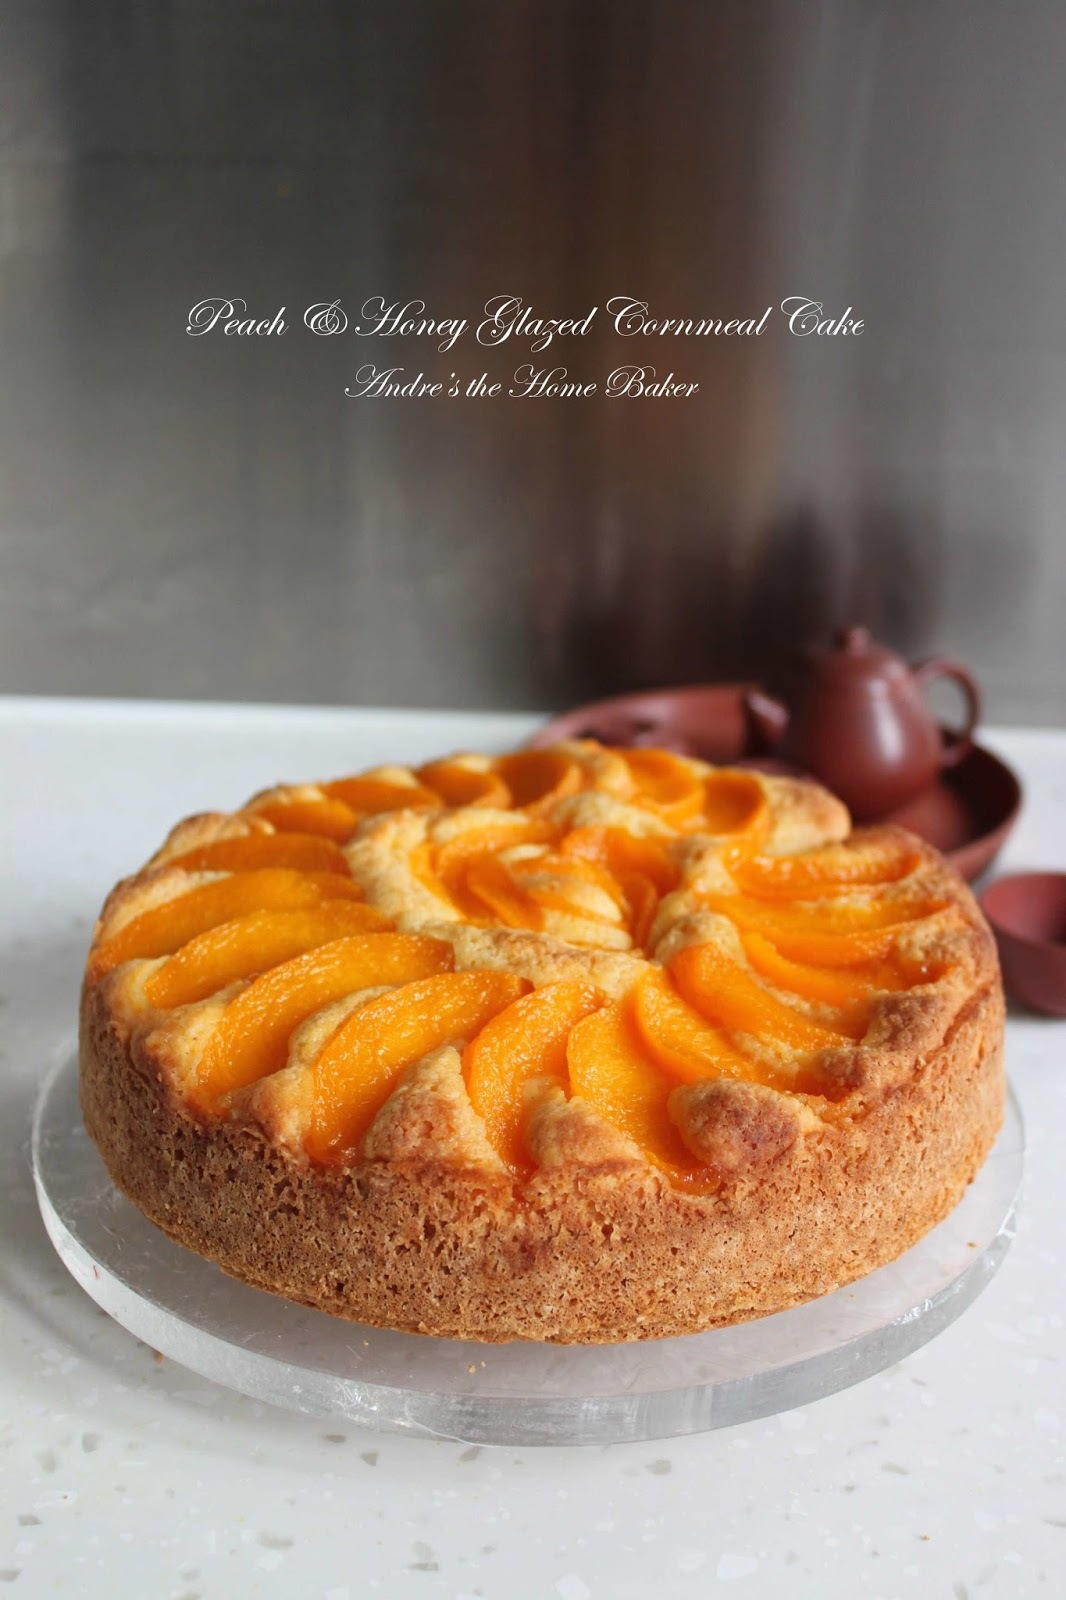 ♥ Peach & Honey Glazed Cornmeal Cake ♥